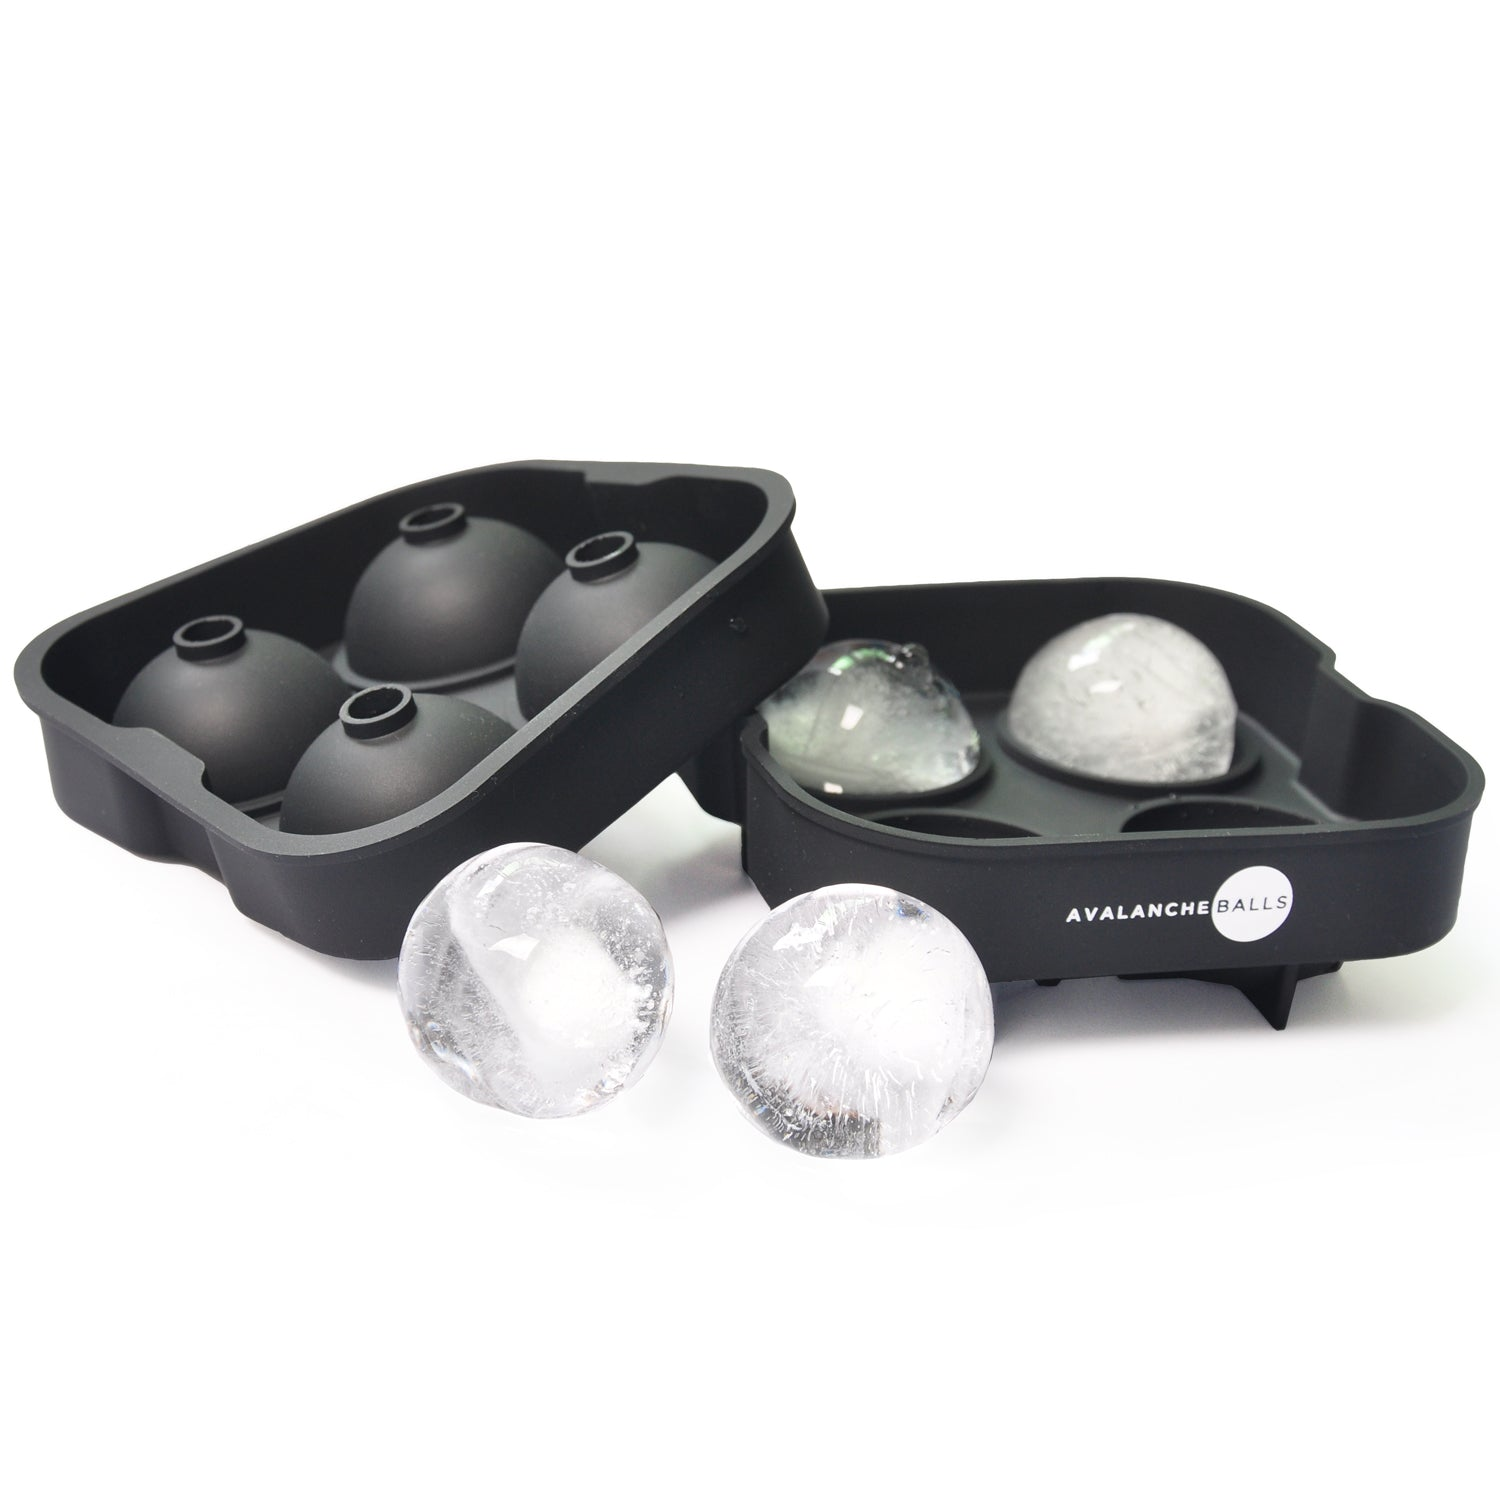 Avalanche Balls - 4 Round Ice Cube Spheres Tray Mold | Monthly Madness